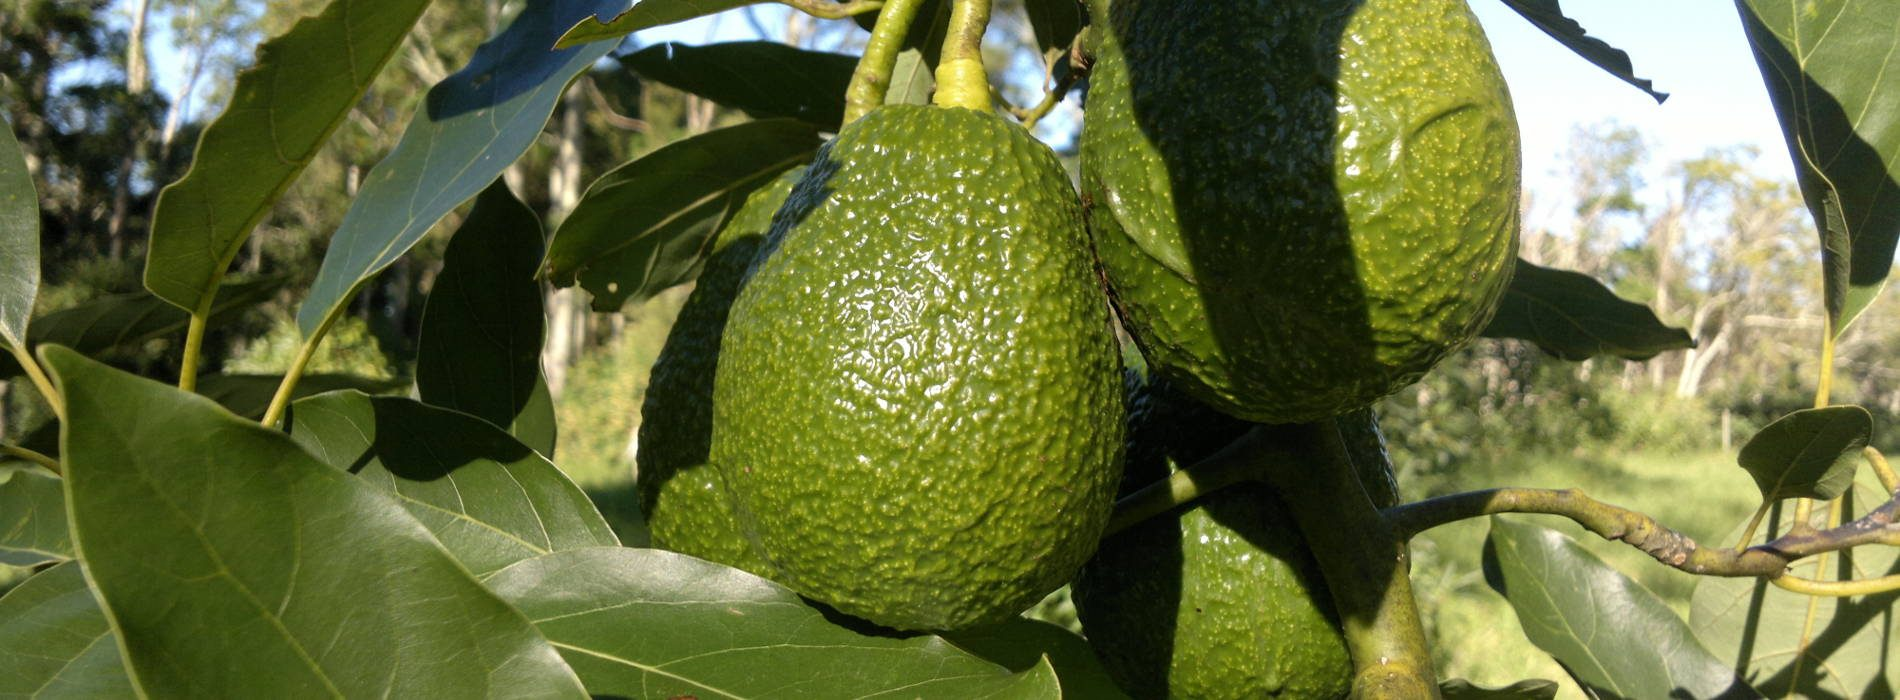 Mozambique commence avocados export to EU